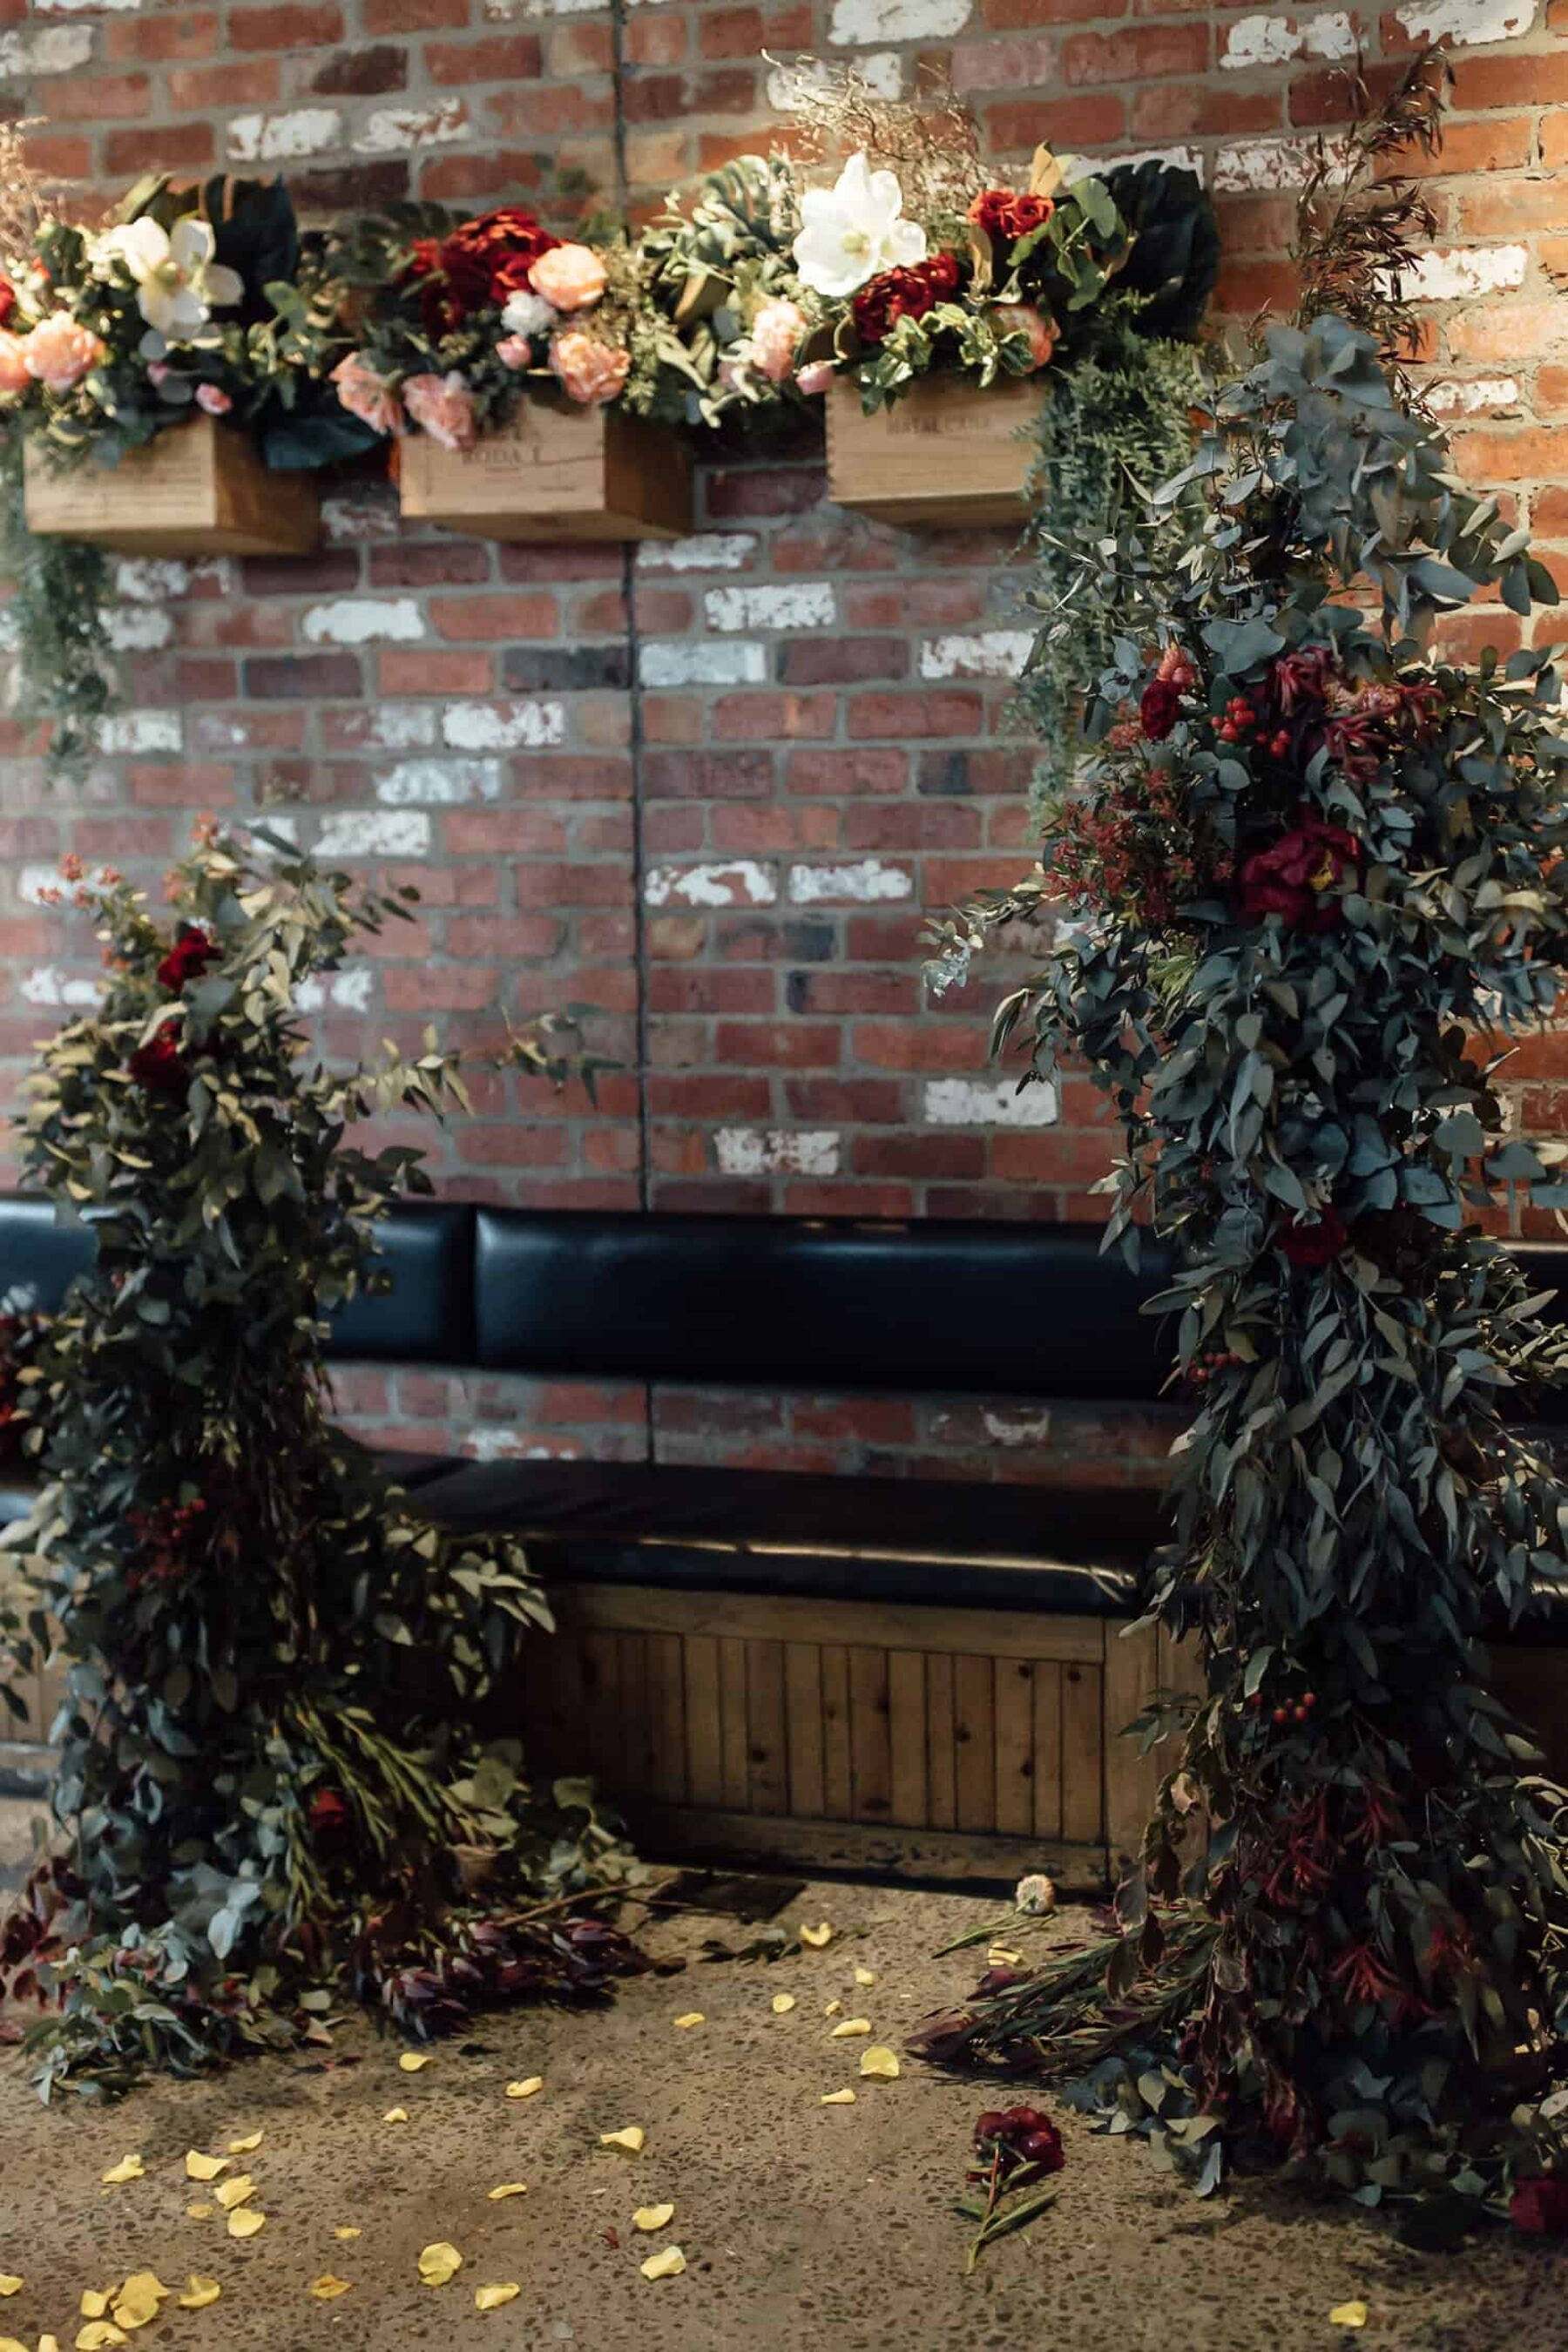 floral arch installation on exposed brick